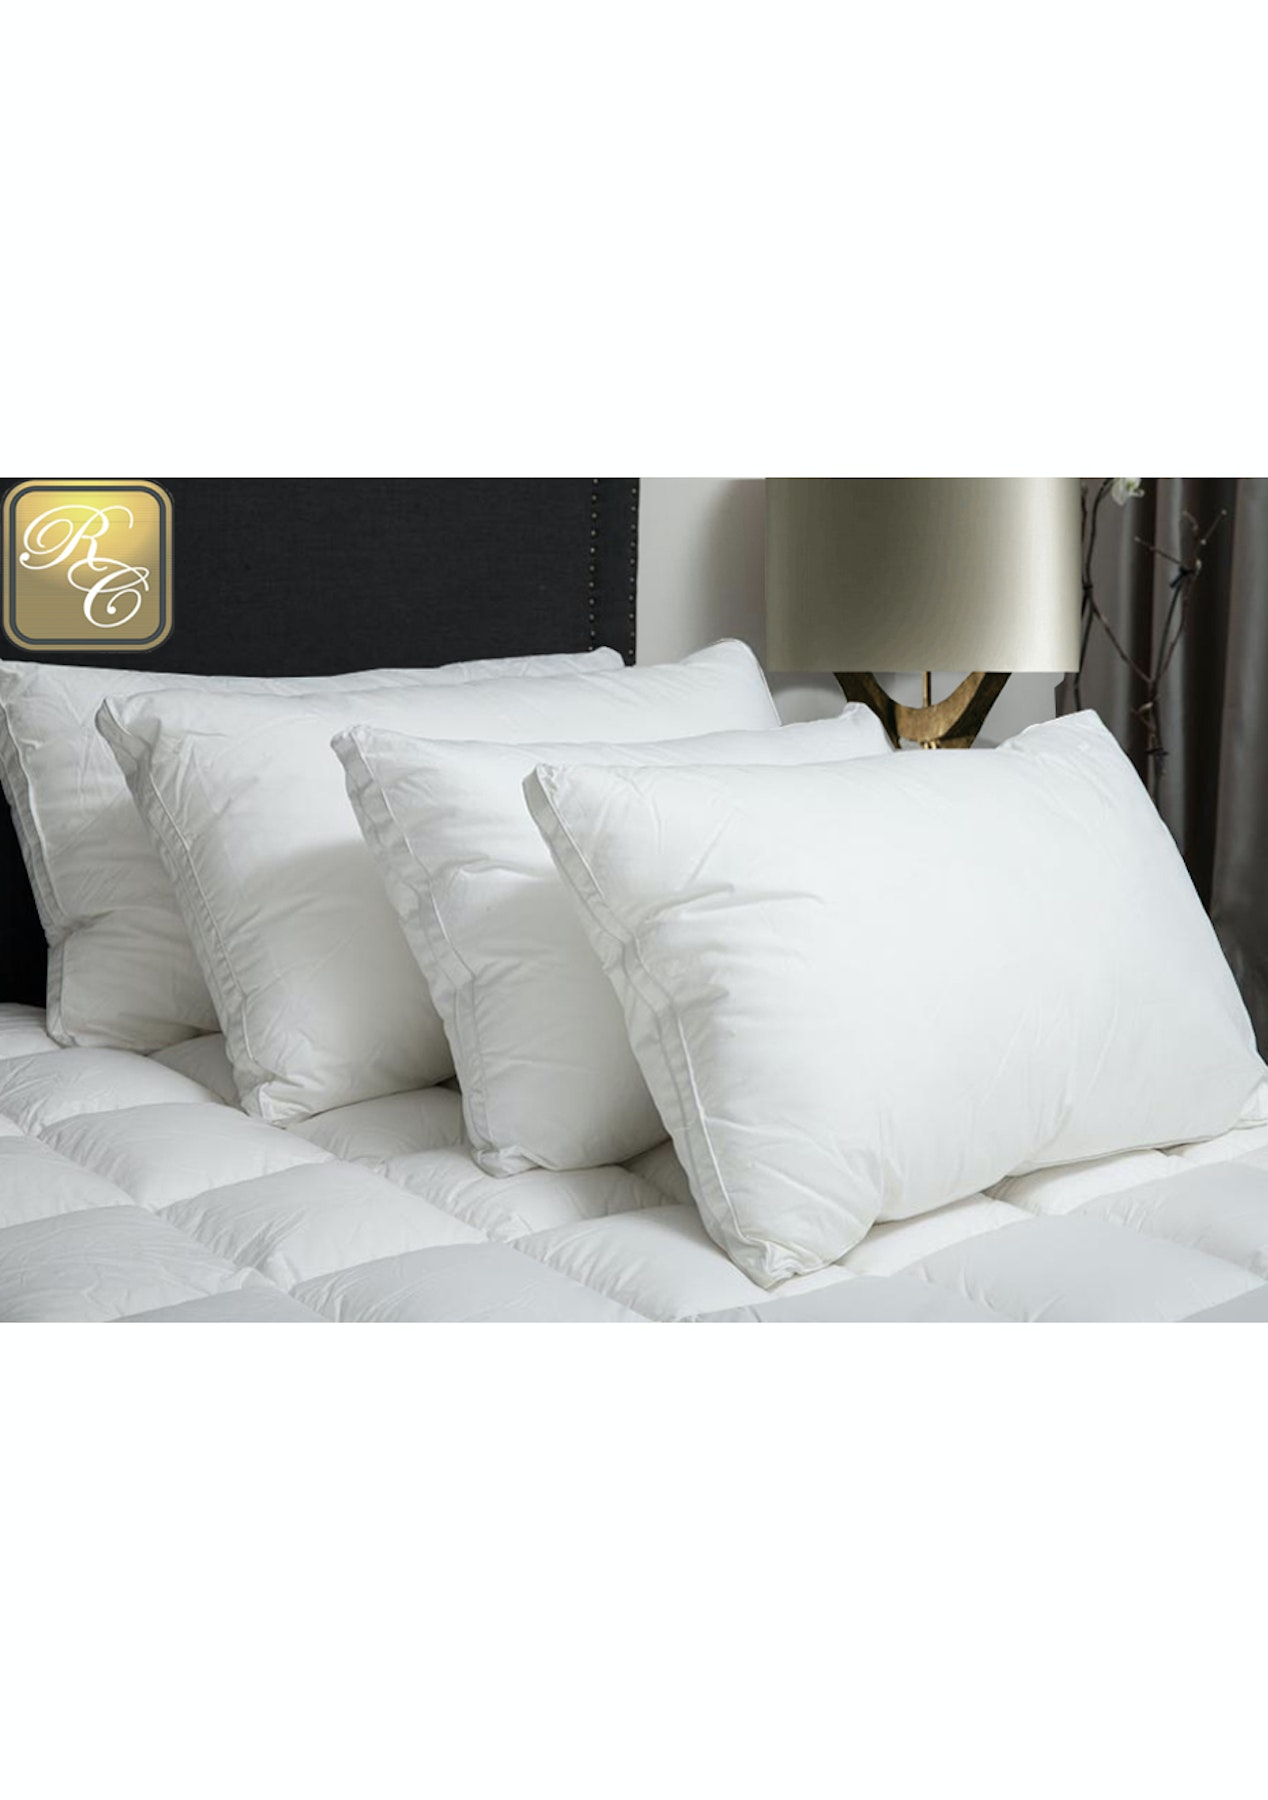 king blanket comfort hypoallergenic gallery bamboo bed sheets pillows cool with of comforter cushion set memory hotel foam pillow covered